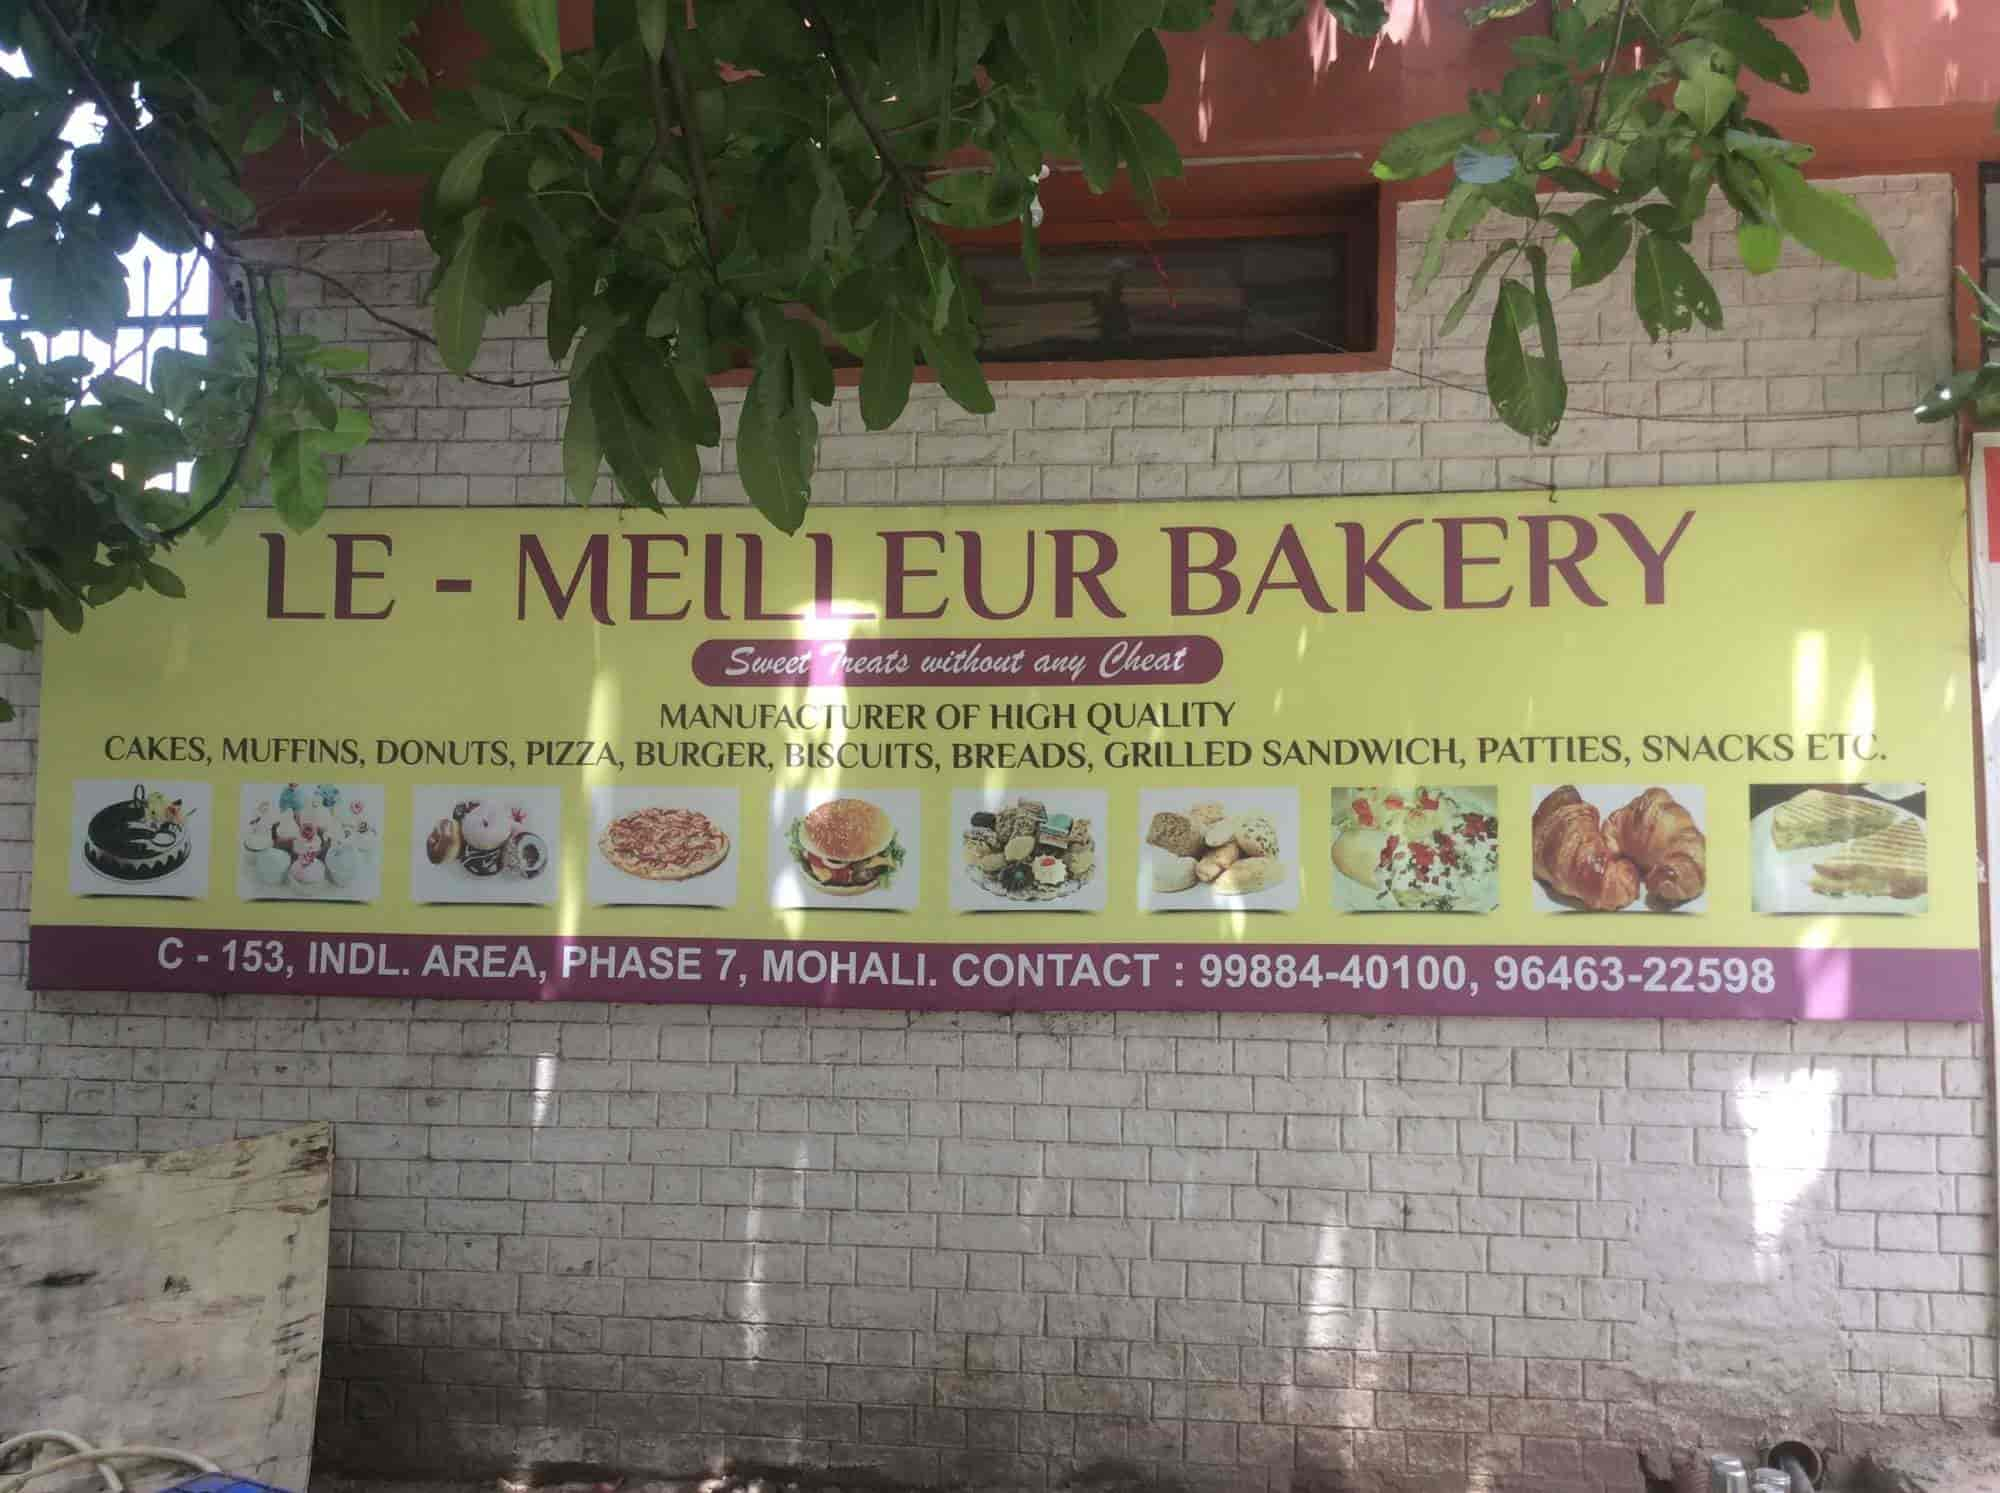 Industrial Le le meilleur bakery photos industrial area phase 7 chandigarh